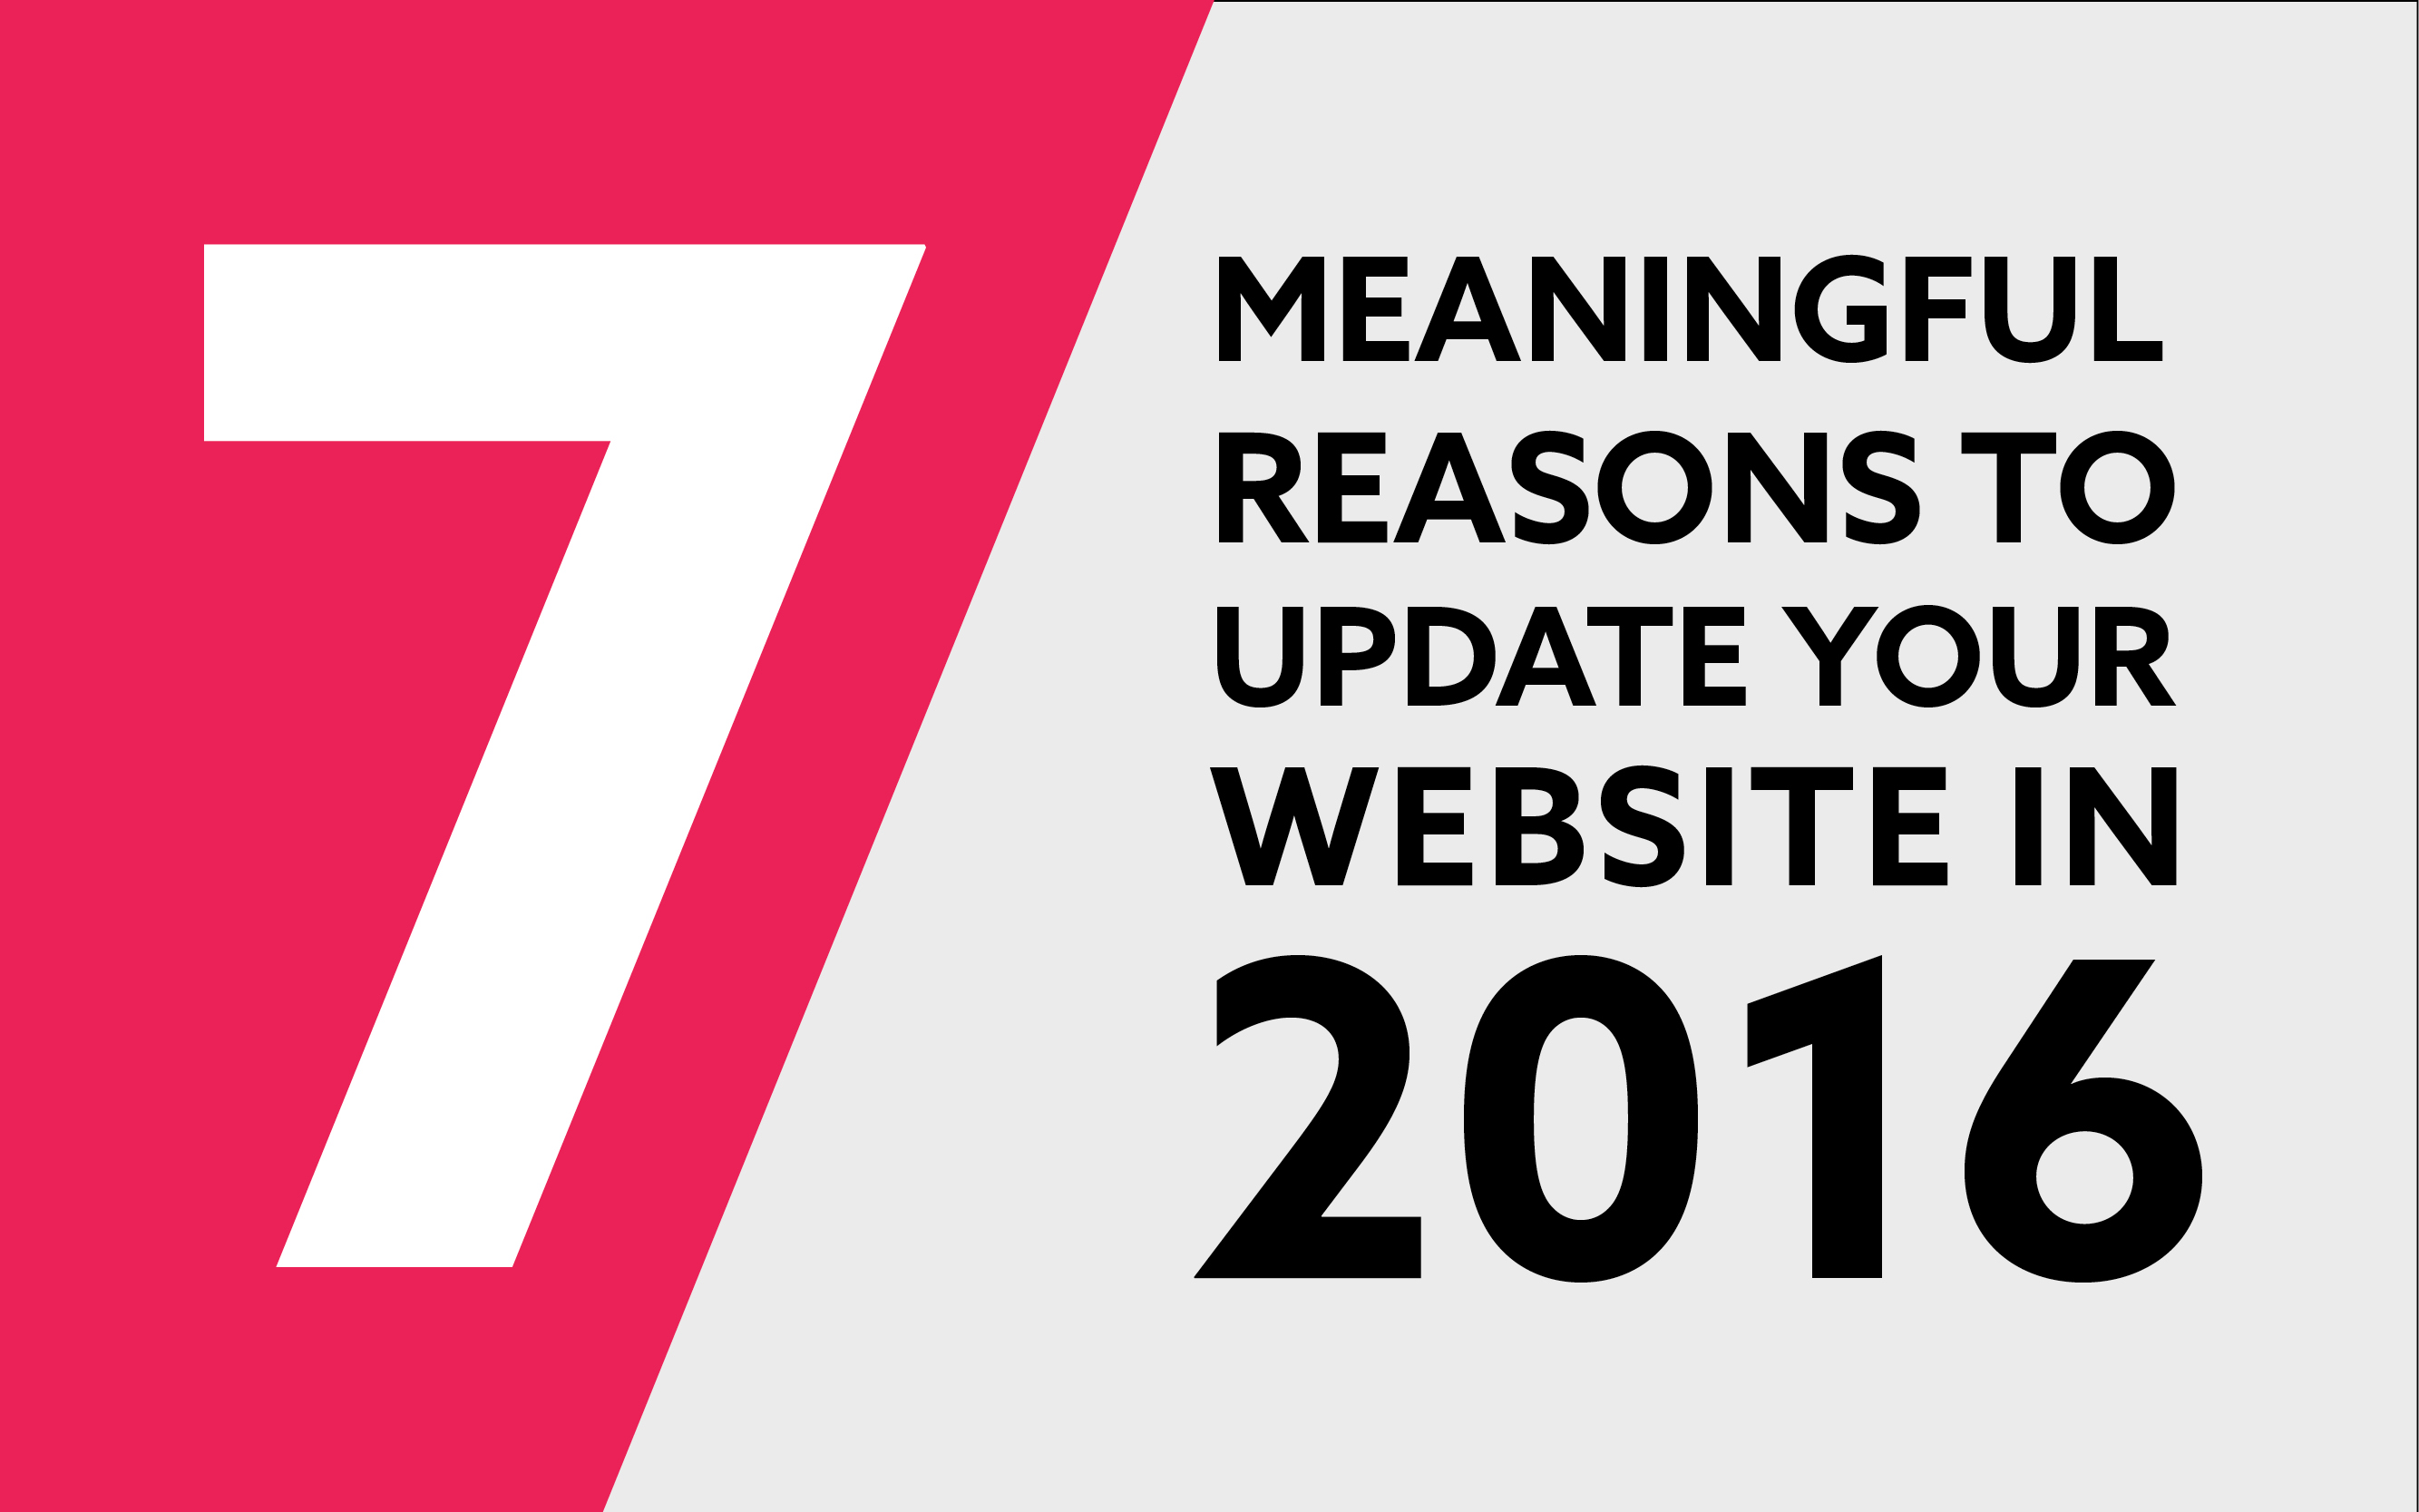 7 meaningful reasons to update your website in 2016